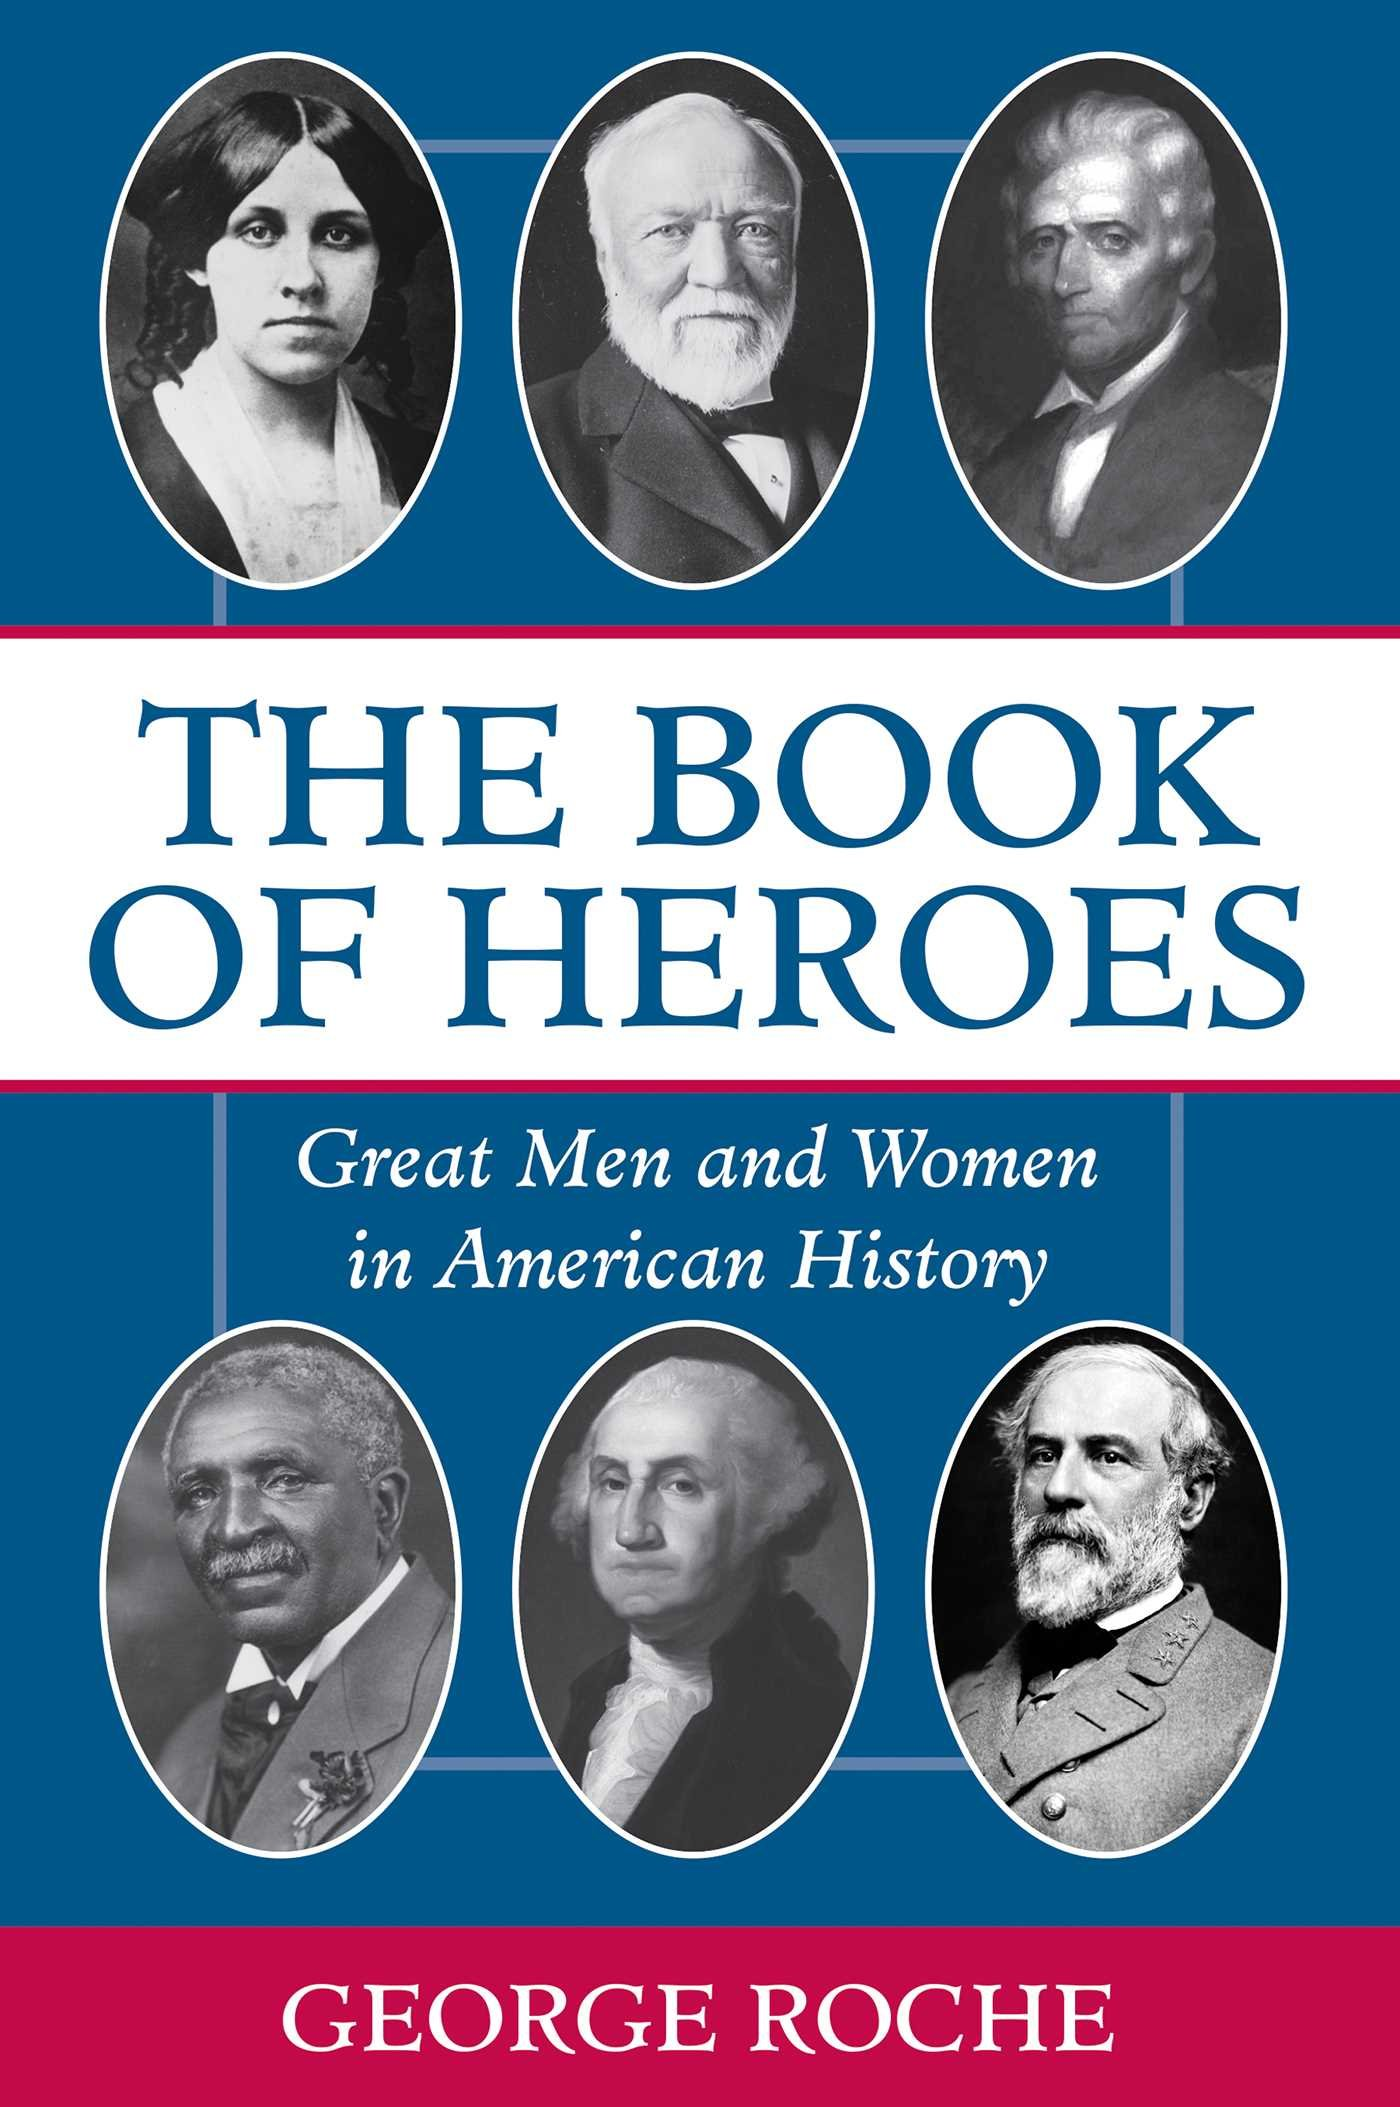 Download The Book of Heroes: Great Men and Women in American History PDF